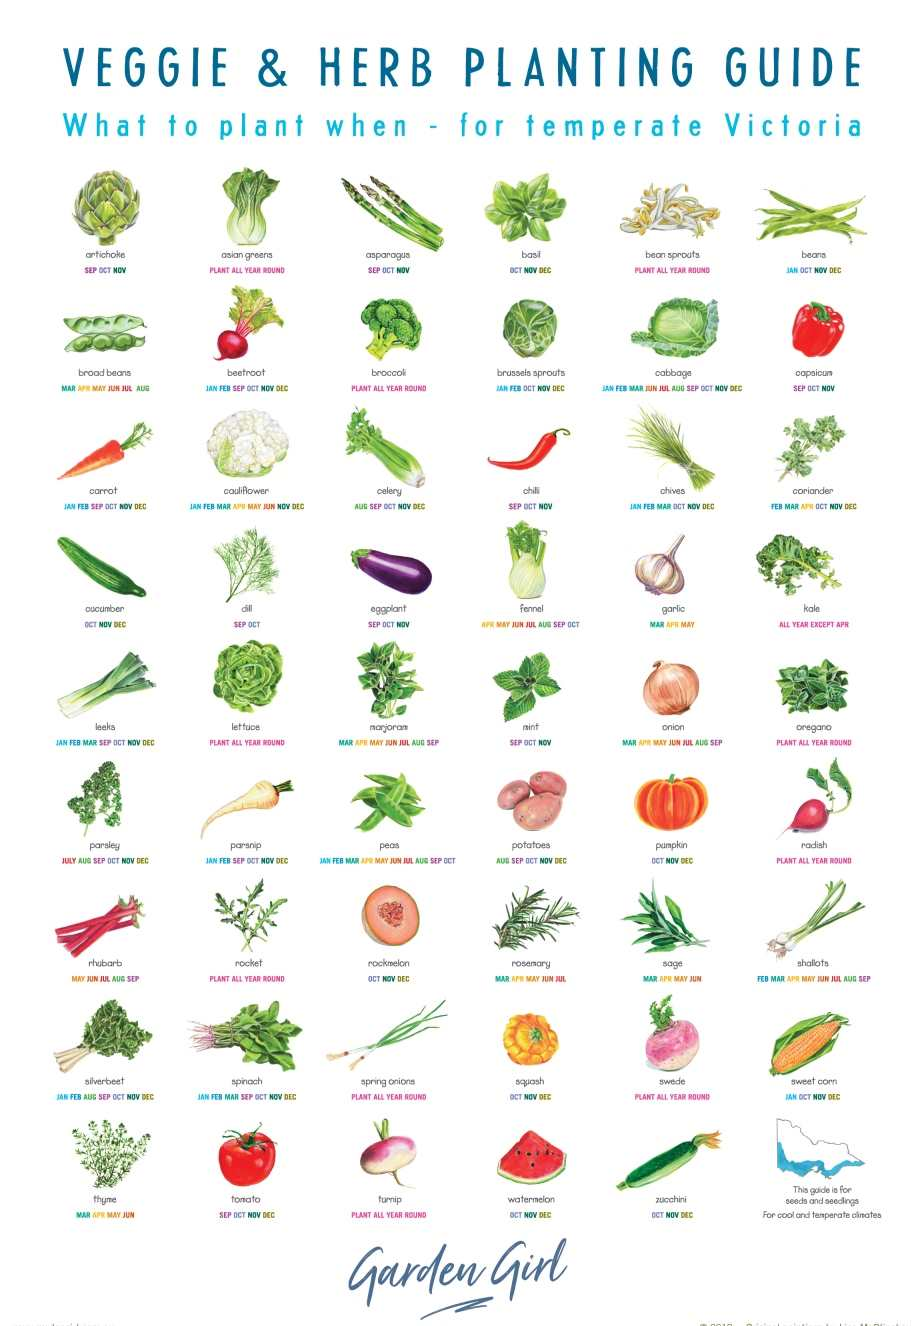 Tea Towel - Veggie & Herb Planting Guide (Temperate Victoria) | by Garden Girl - Tea Towel - Throw Some Seeds - Australian gardening gifts and eco products online!